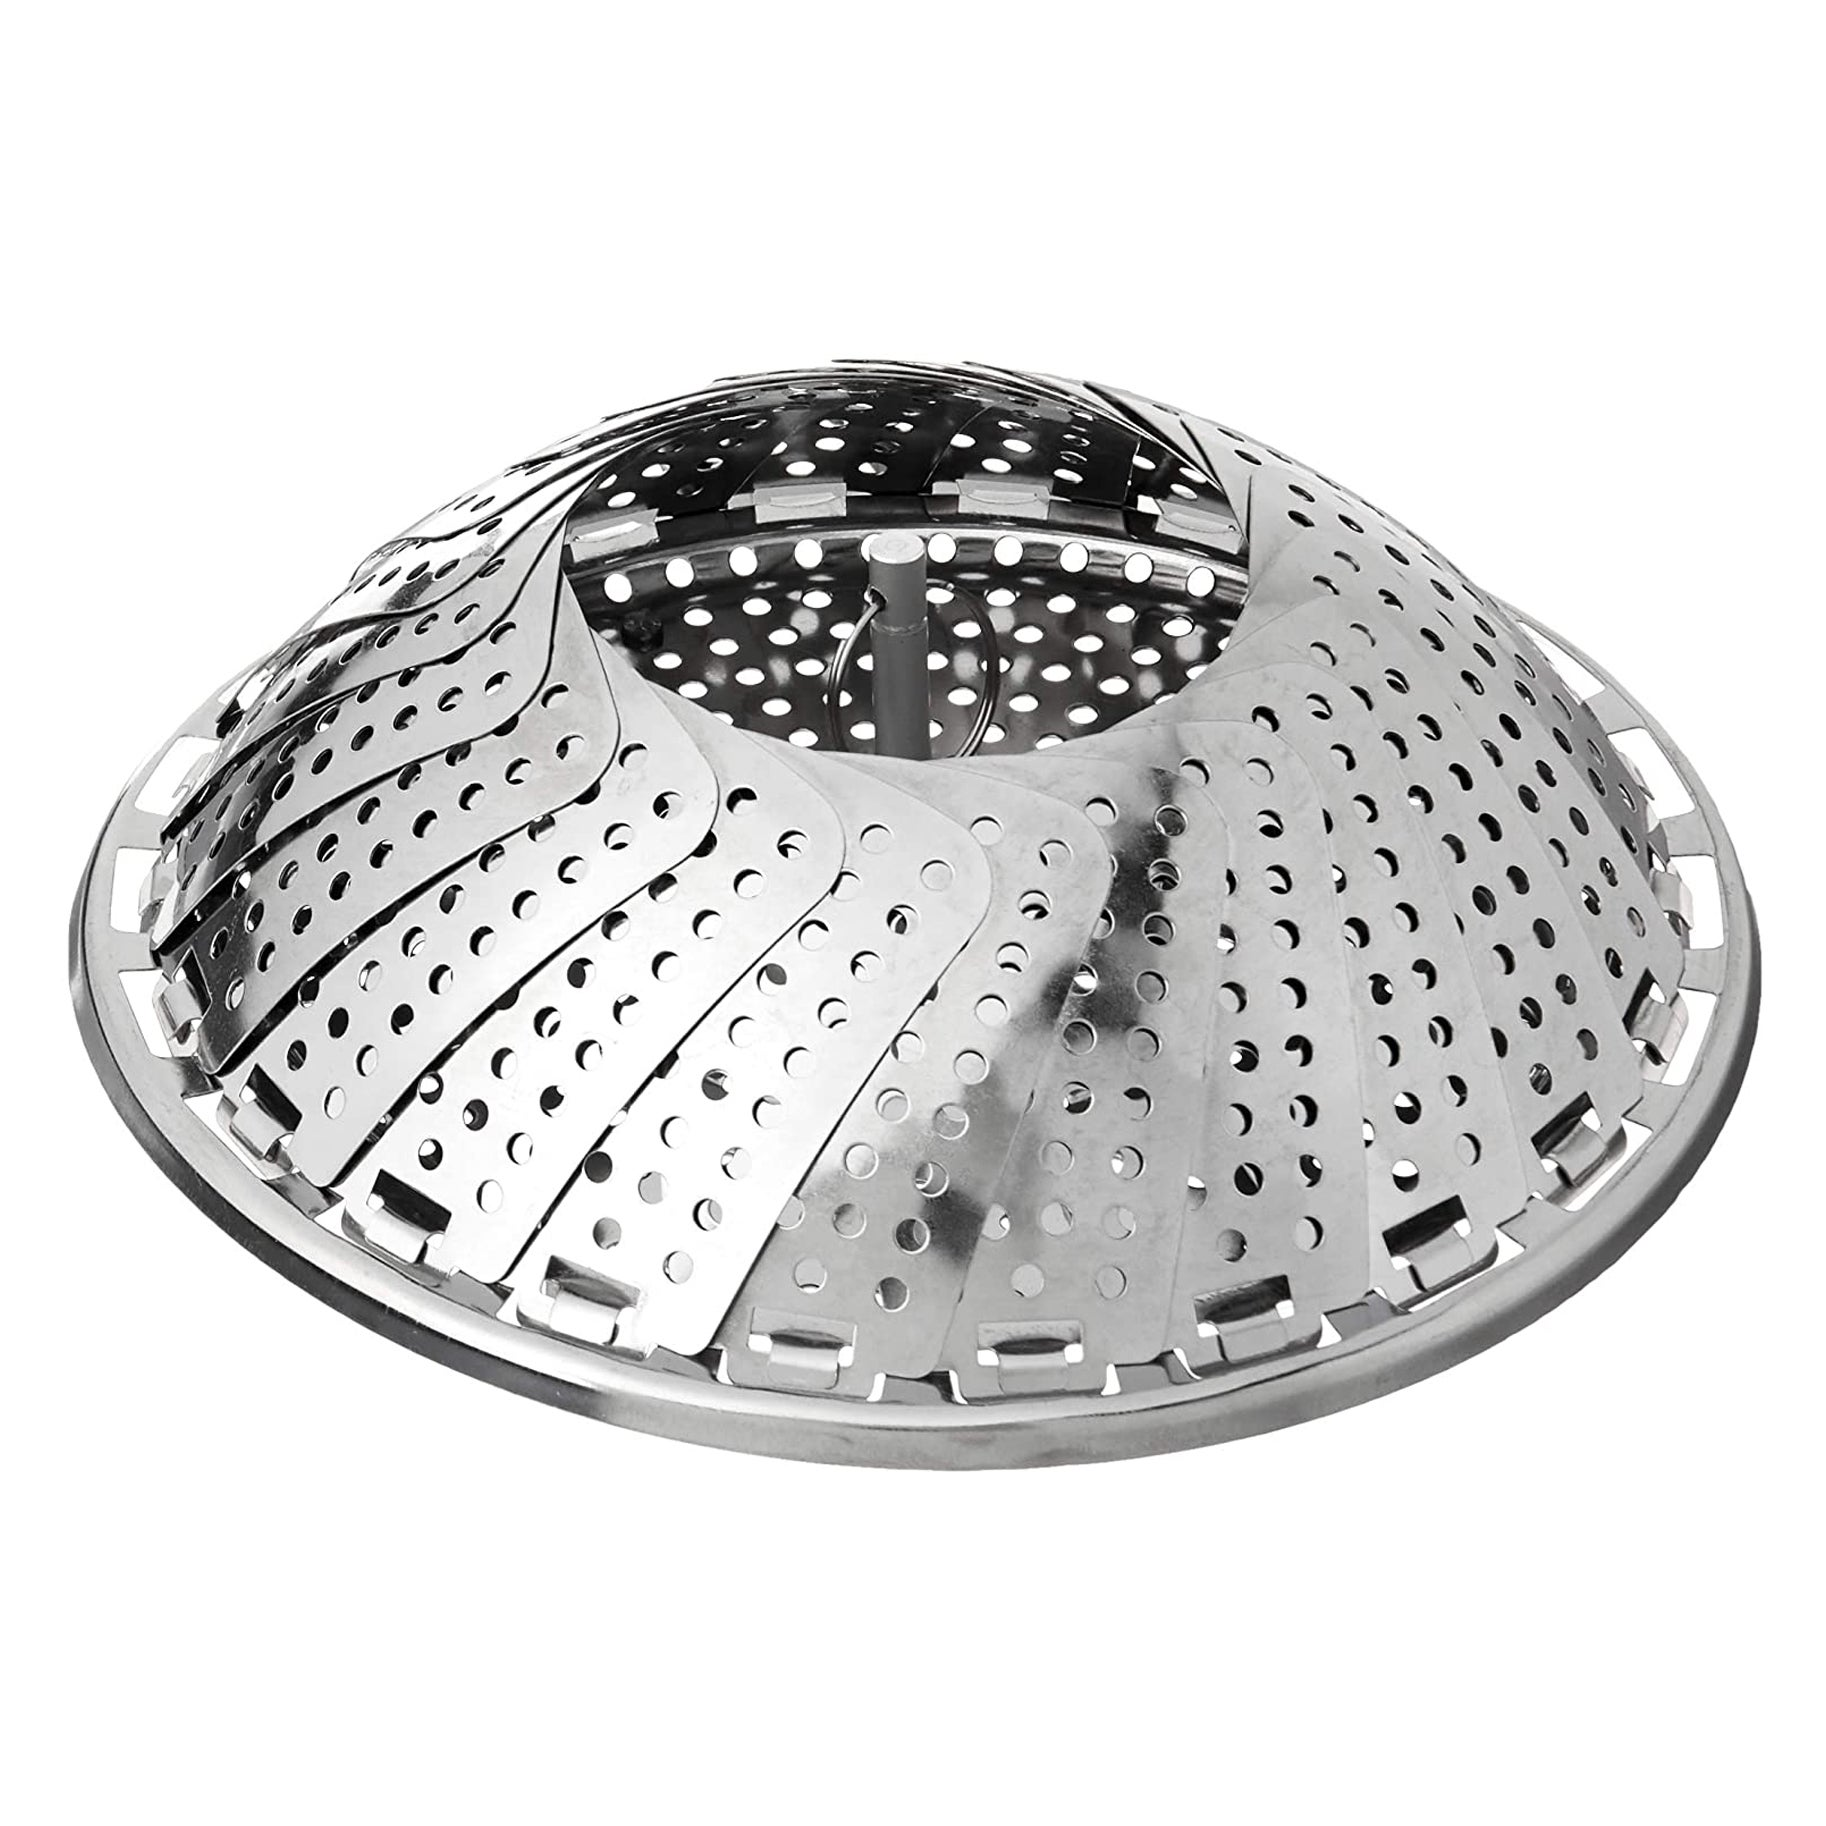 The Best Food Steamers Option: Zyliss Stainless Steel Vegetable Steamer Basket